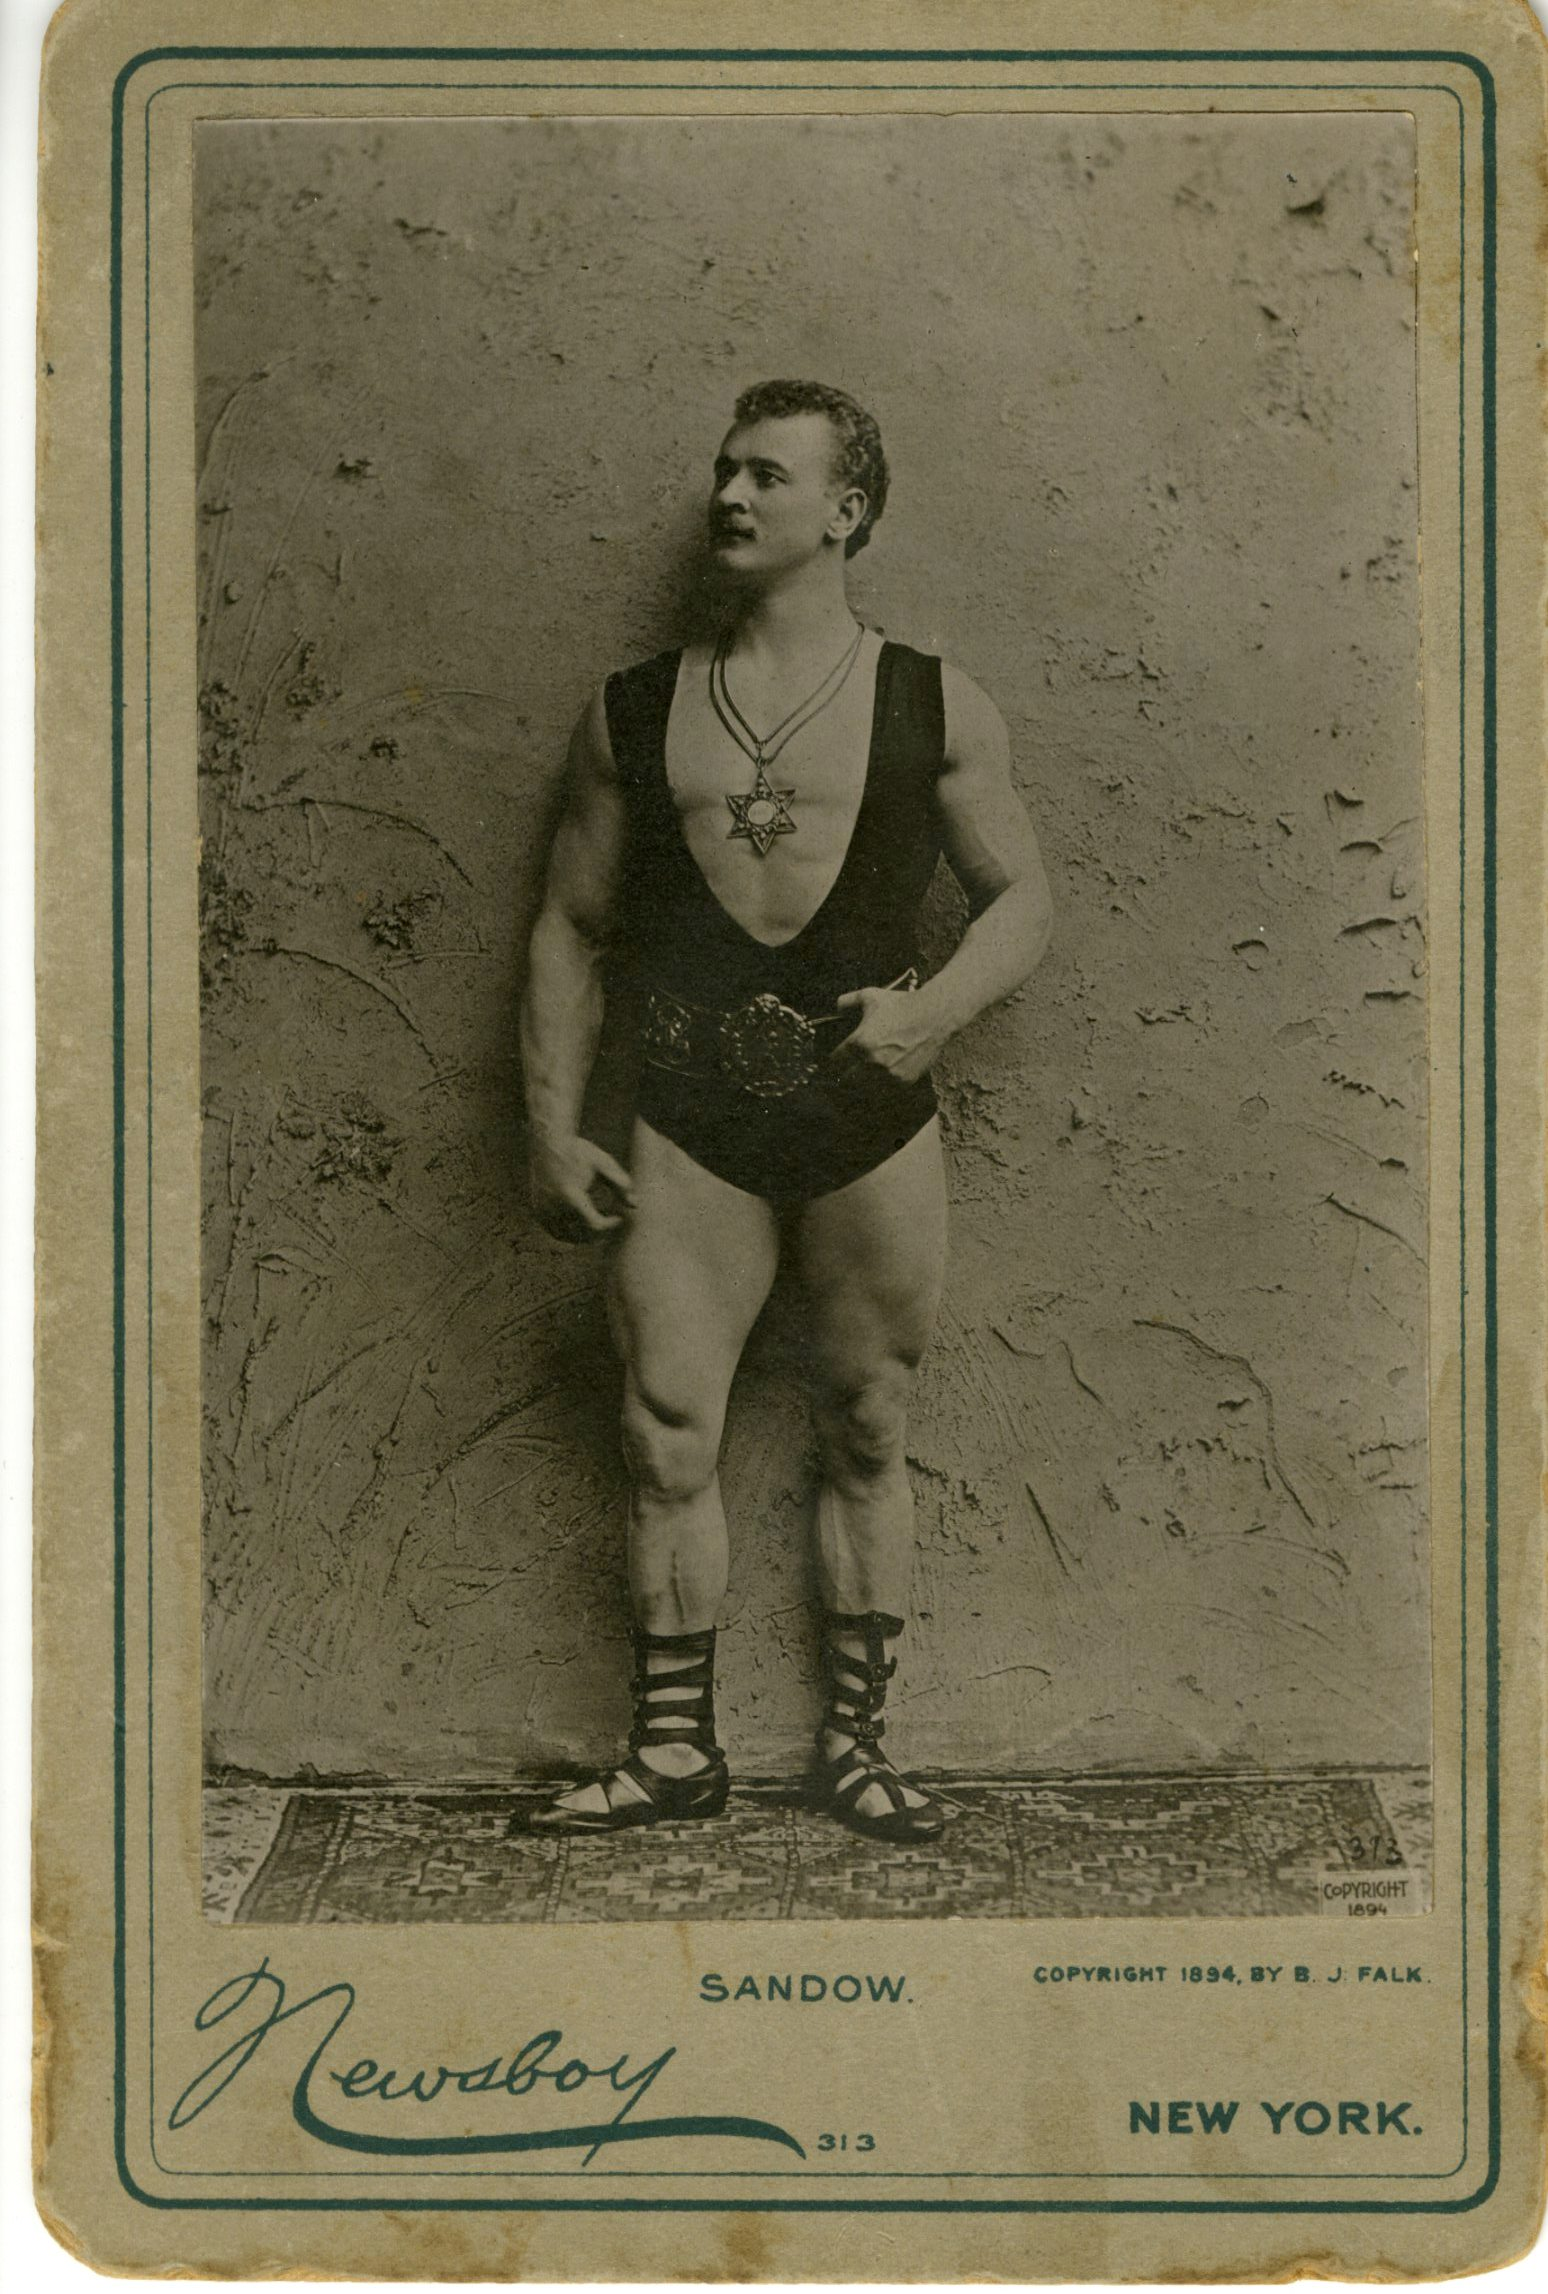 sandow the magnificent Sandow the magnificent : eugen sandow and the beginnings of bodybuilding by chapman, david l and a great selection of similar used, new and collectible books available now at abebookscom.